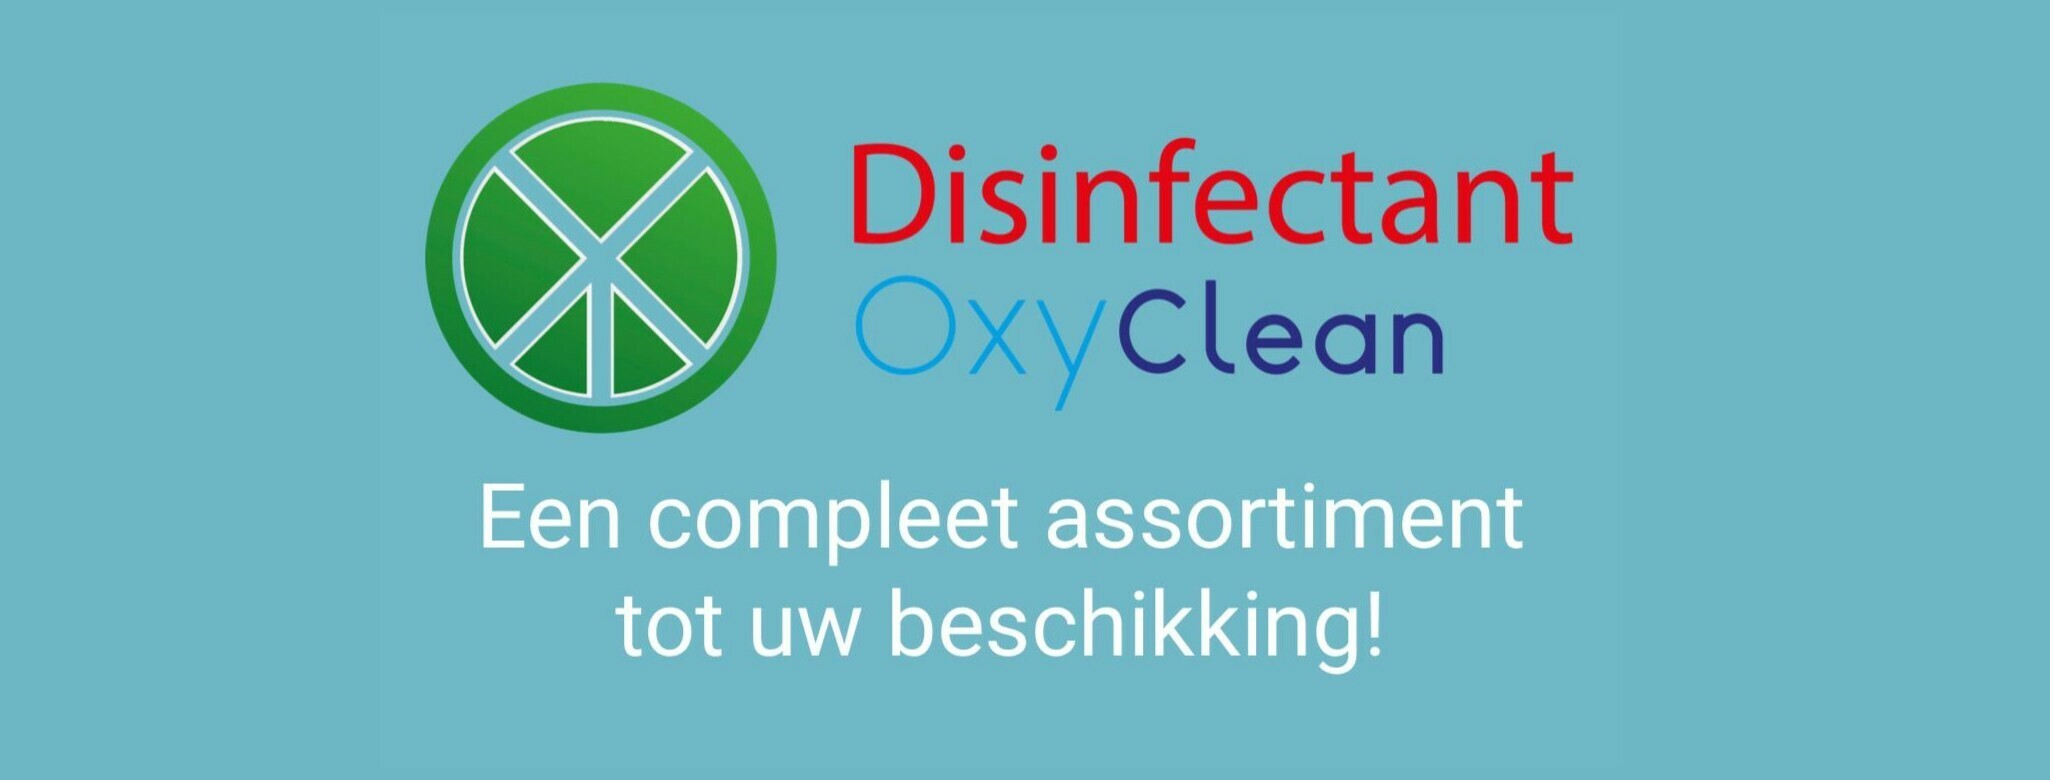 Oxyclean